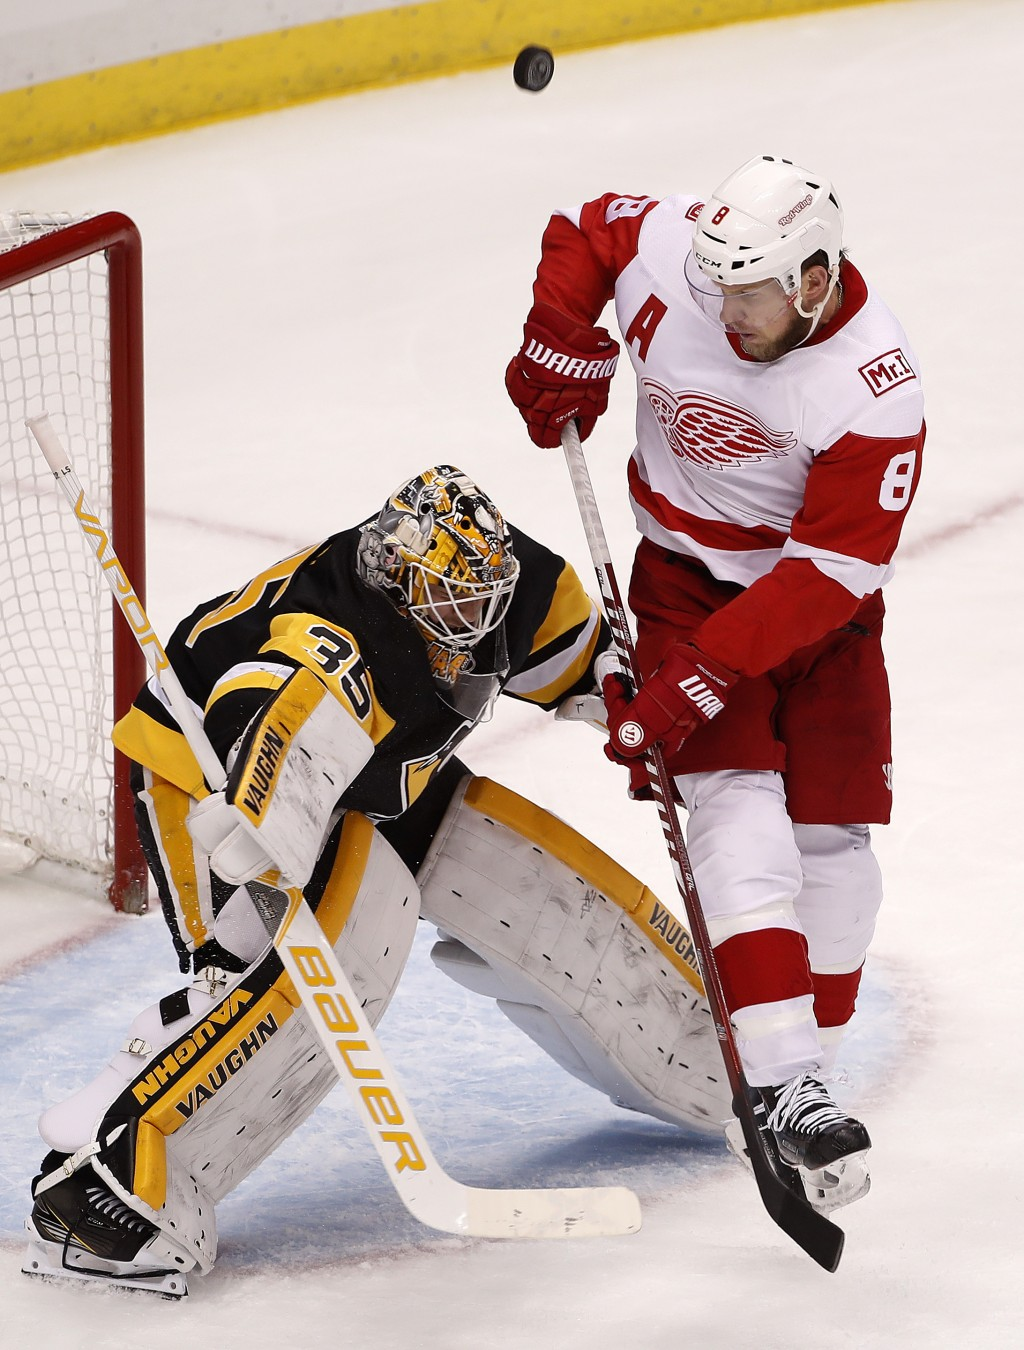 Pittsburgh Penguins goaltender Tristan Jarry (35) blocks a shot with Detroit Red Wings' Justin Abdelkader (8) screening him during the first period of